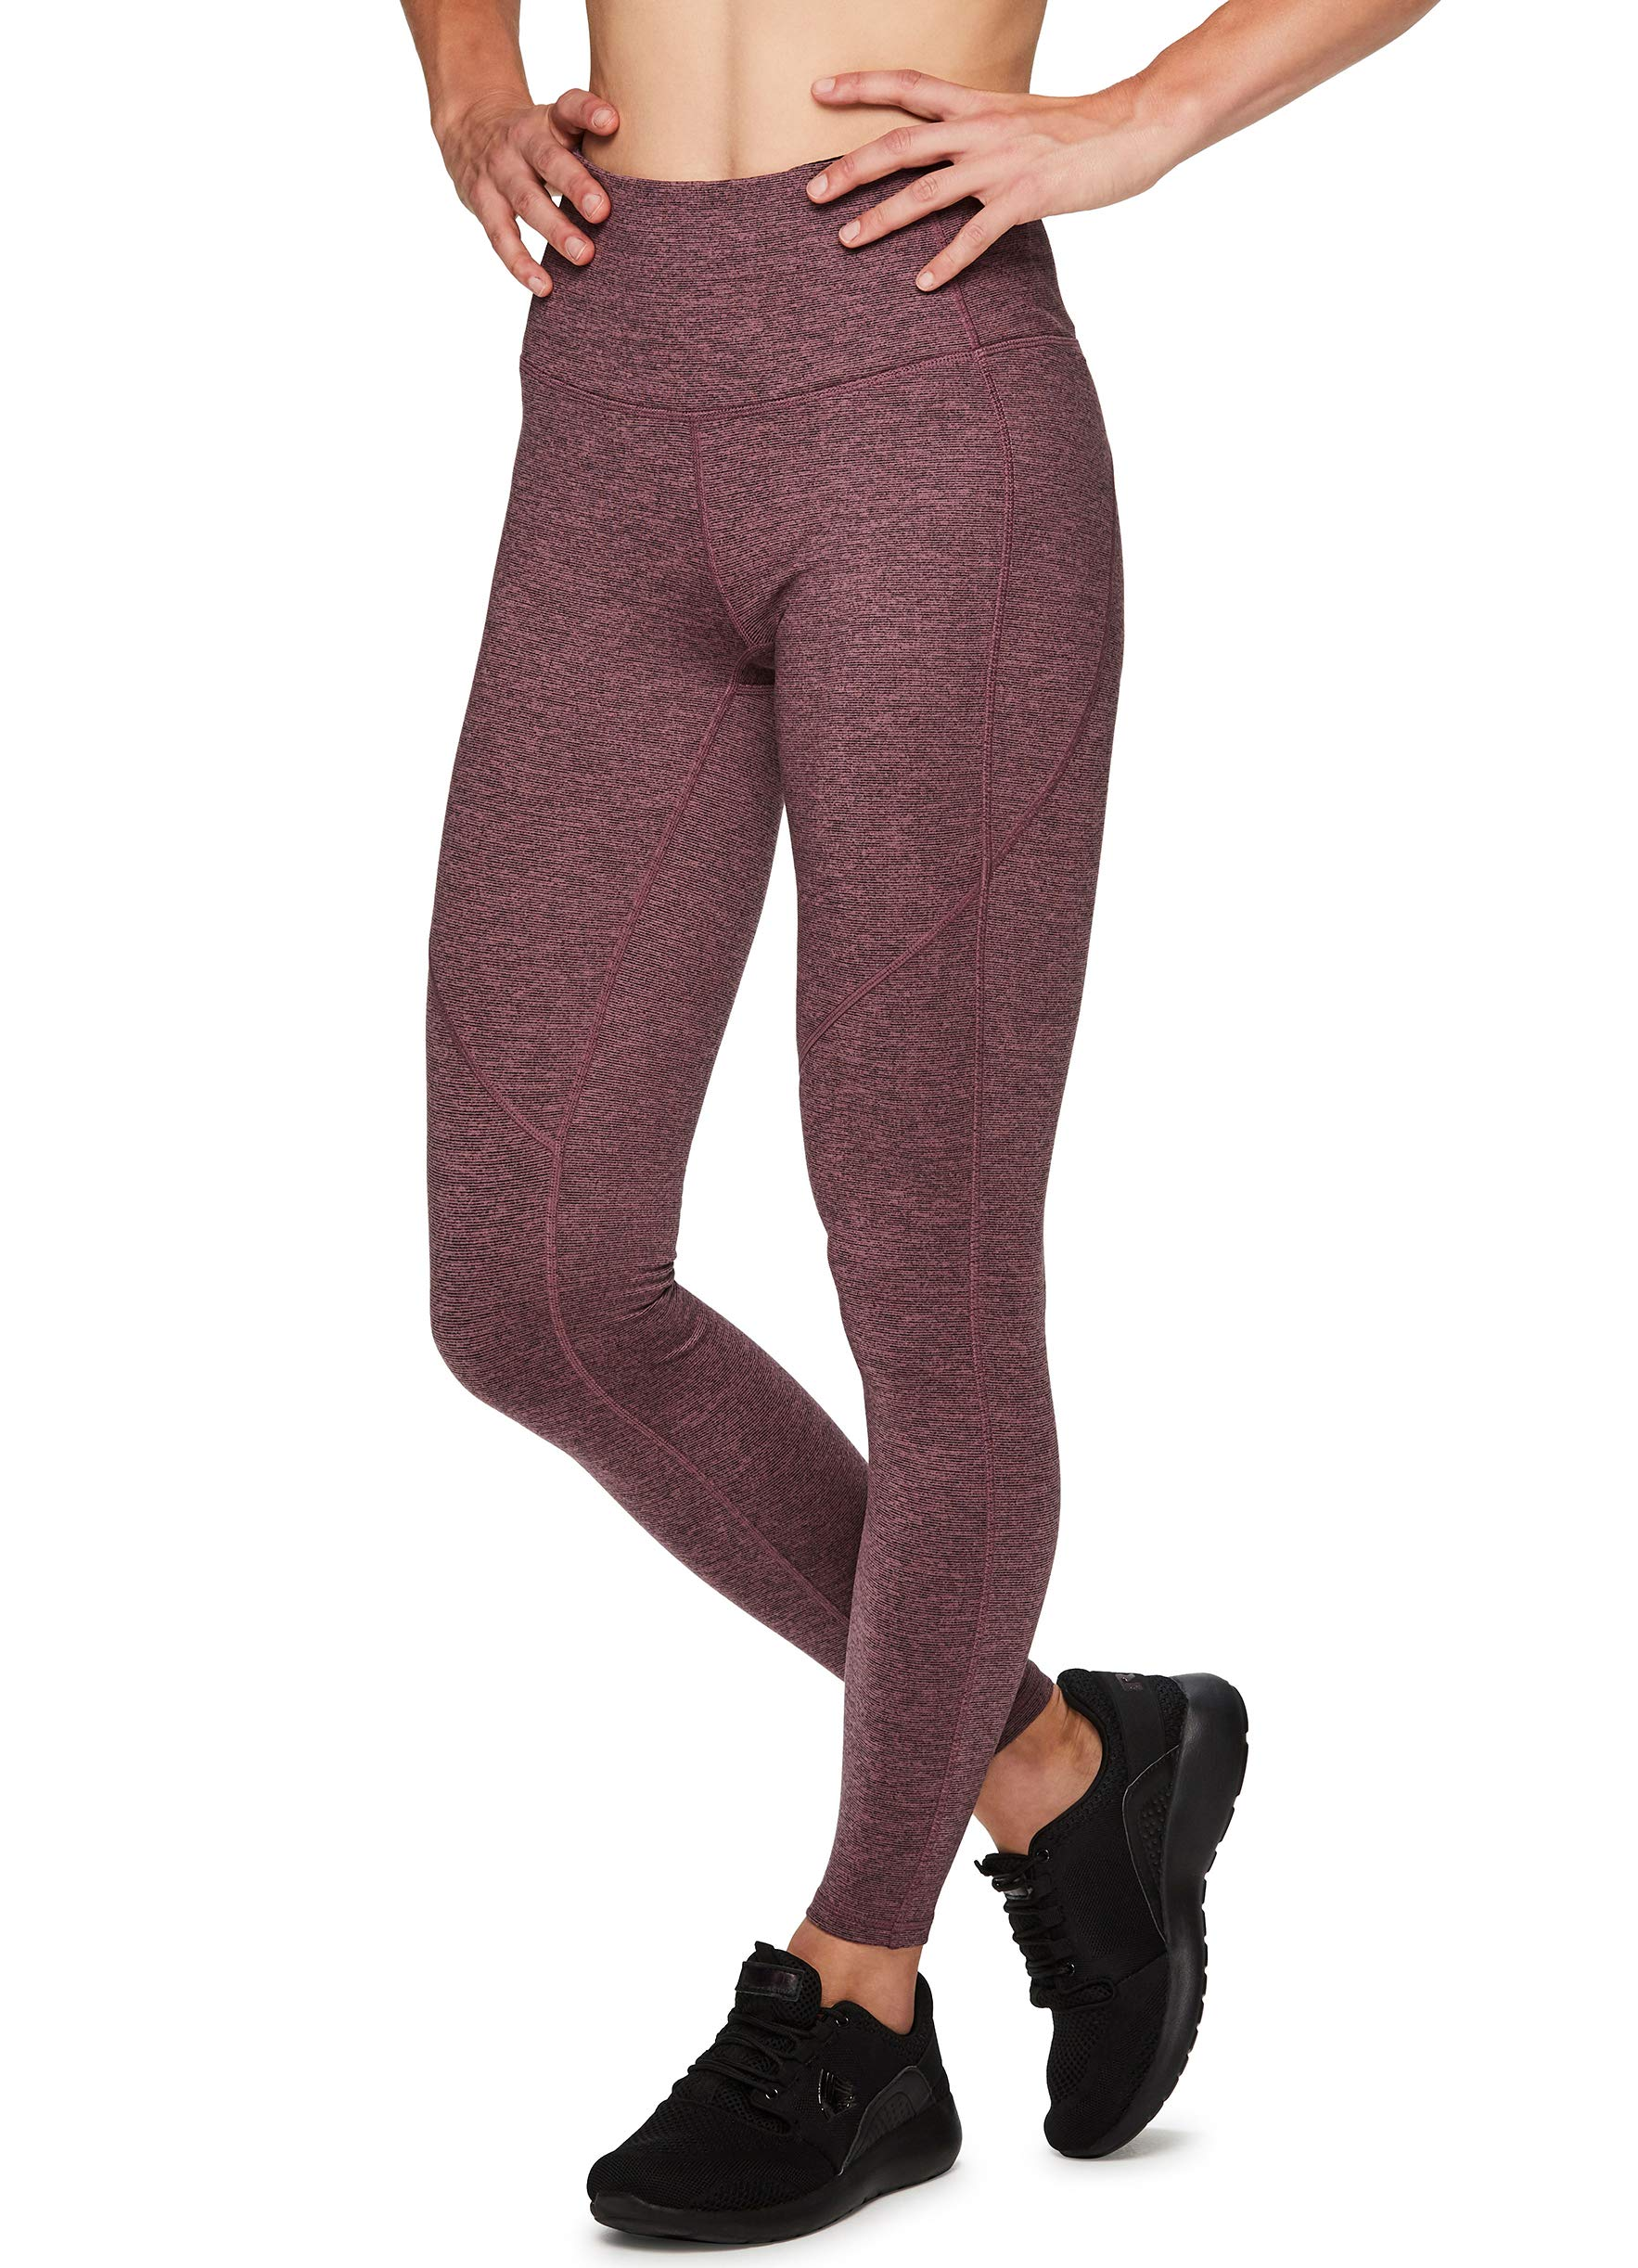 RBX Active Women's Super Soft Peached Space Dye Full Length Workout Running Yoga Legging